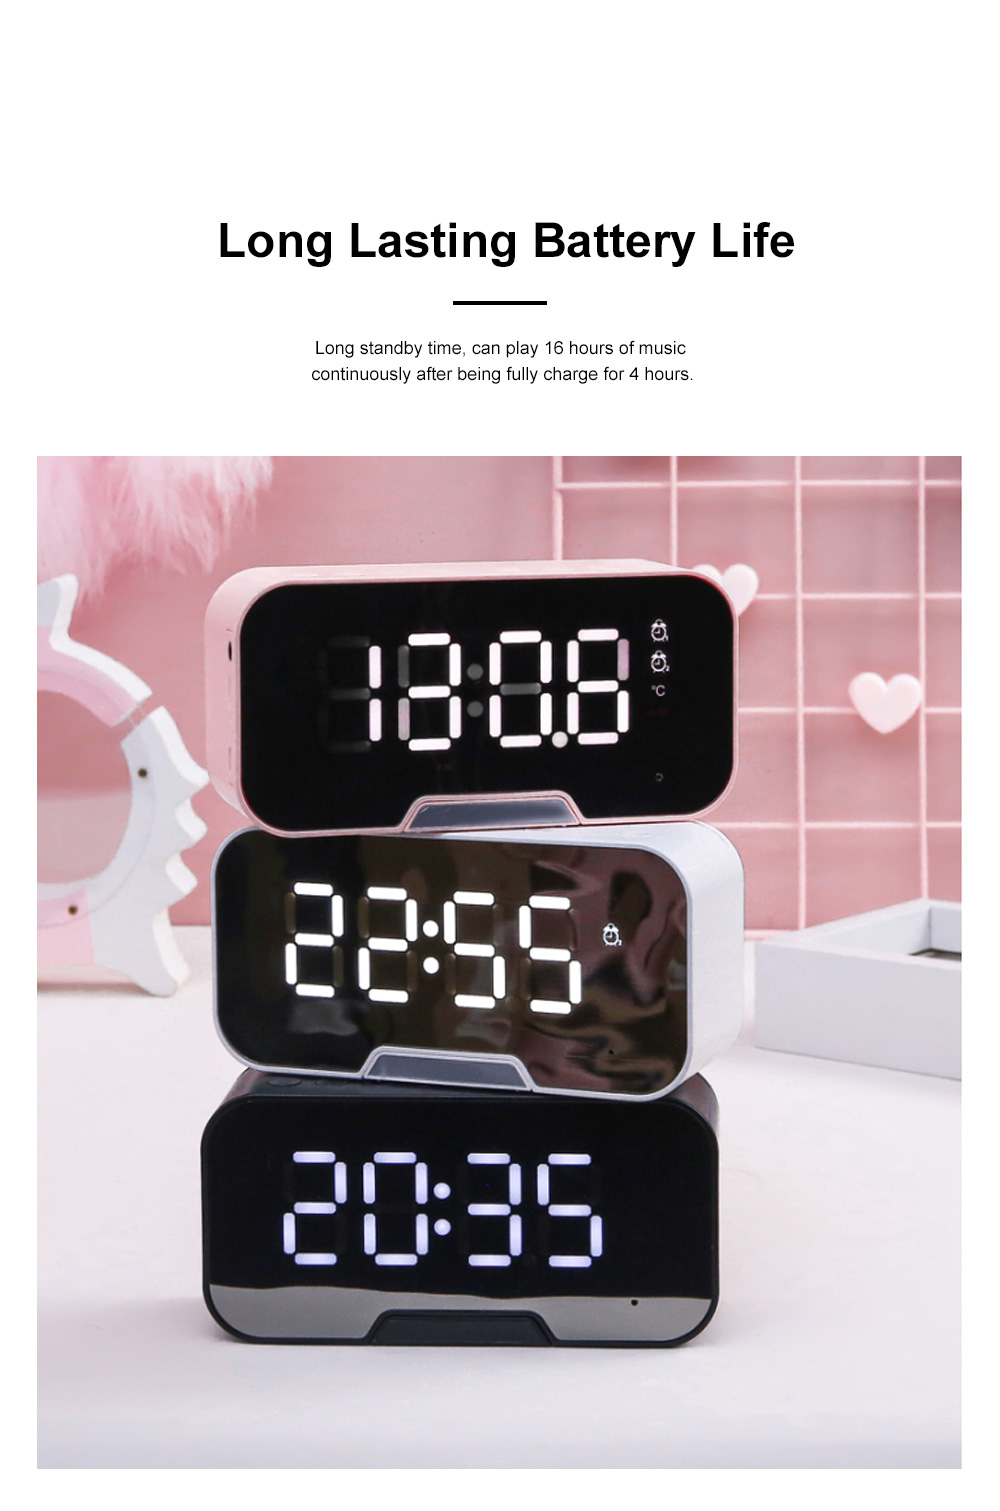 Bluetooth Speakers Alarm Clock Radio with Dual Alarms and 3 Level Brightness Adjustment and Stereo Sound 3